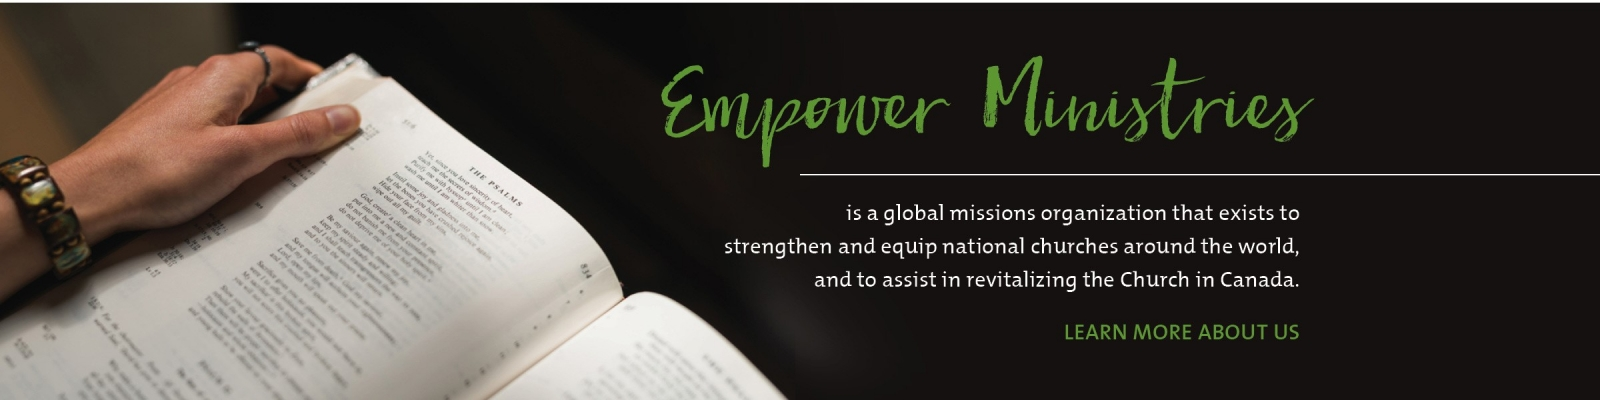 What is Empower Ministries? outreach mission vision